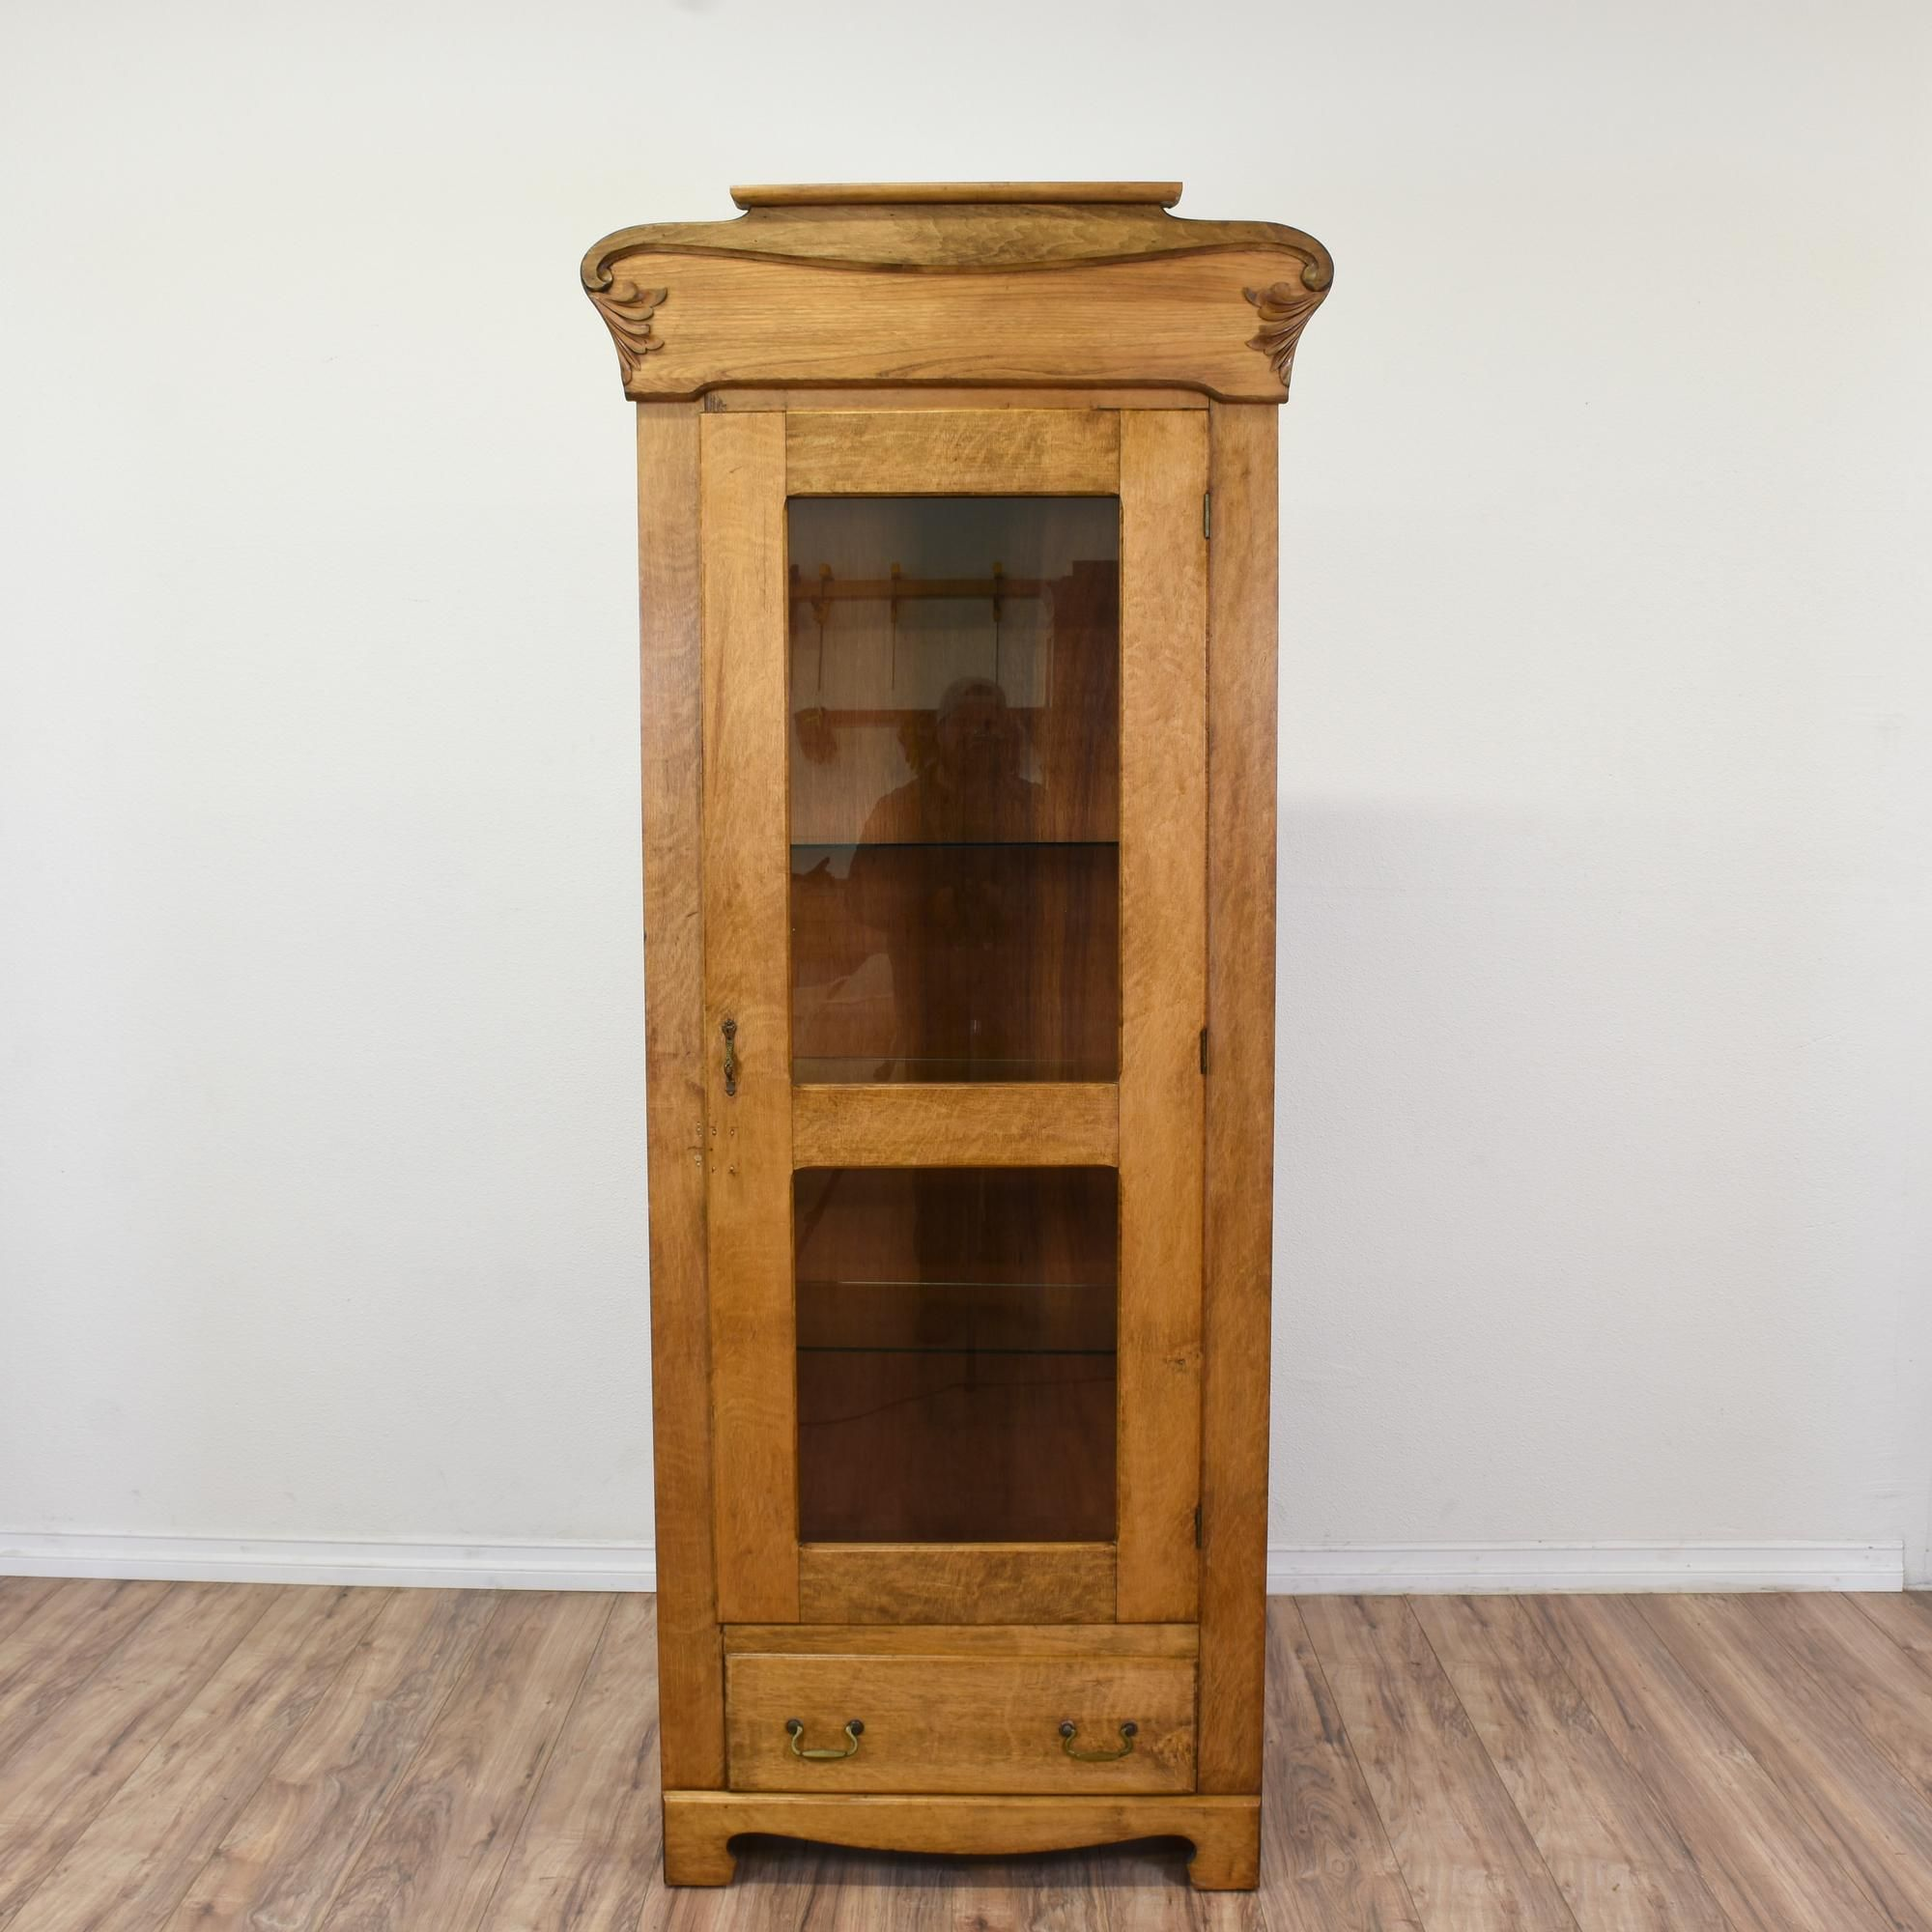 This eastlake inspired display case is featured in a solid wood with